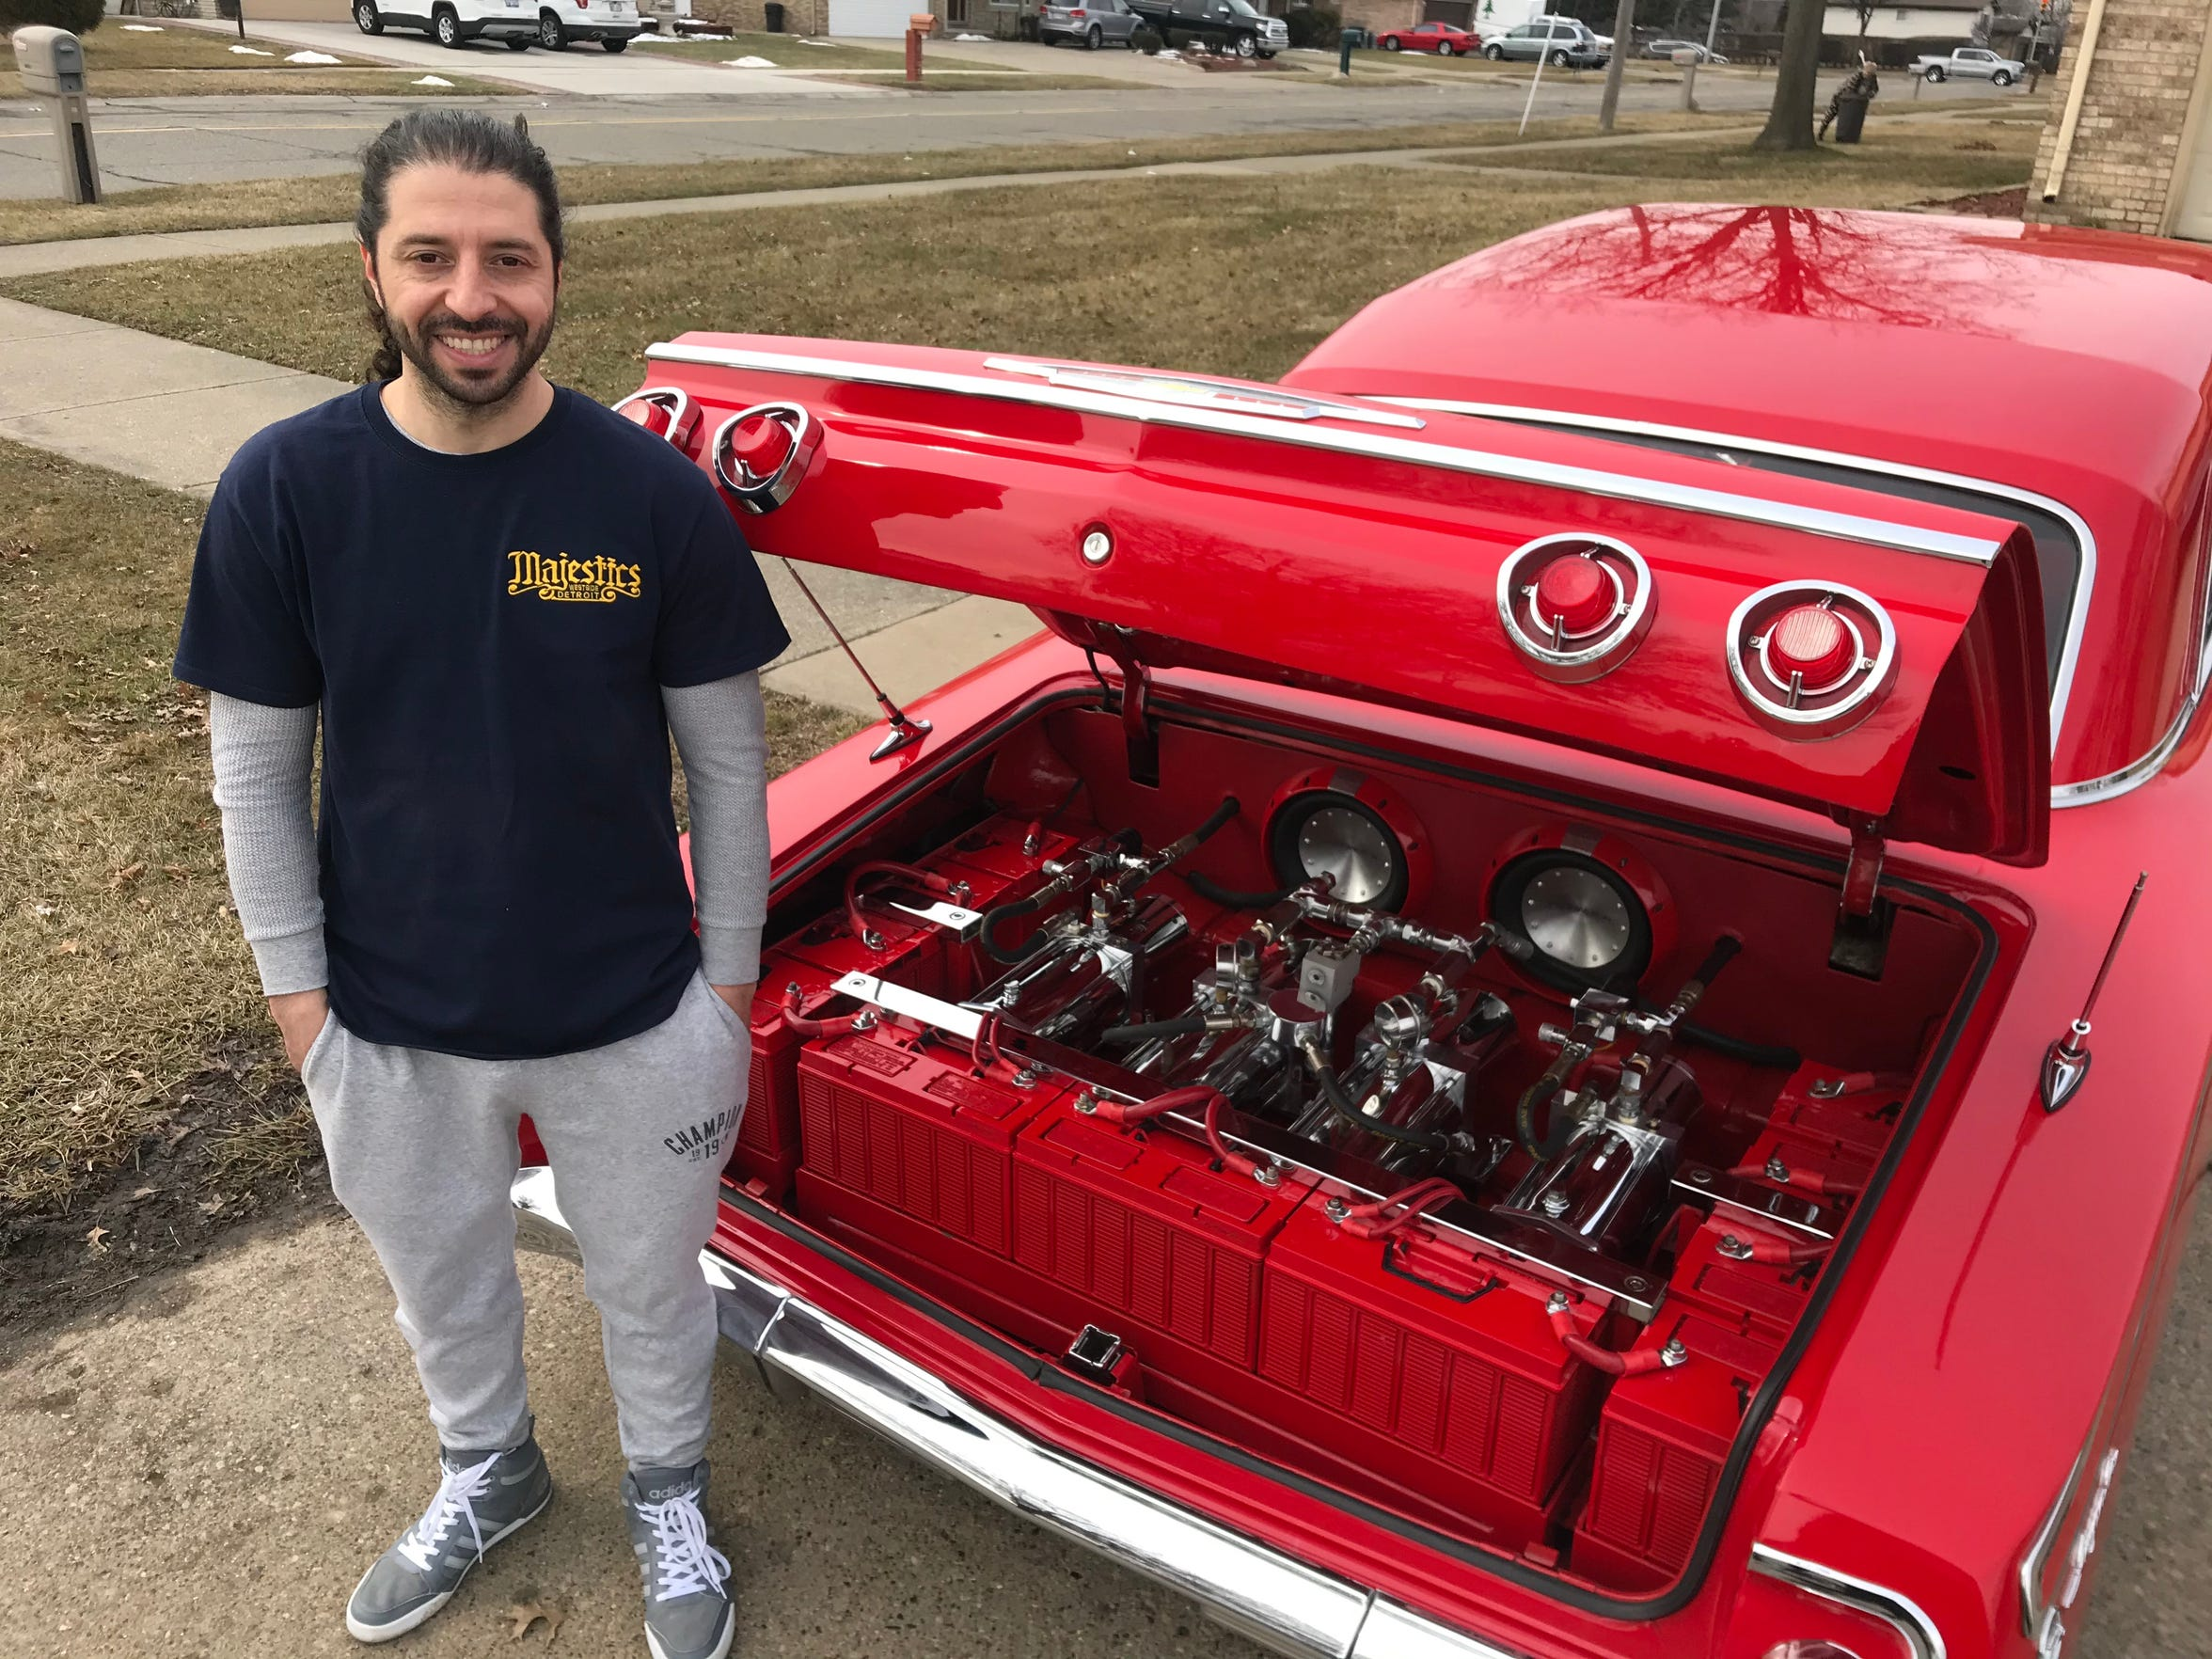 Ferras Sabo, 39, of Sterling Heights shows off his customized 1962 Chevrolet Impala lowrider. The trunk is packed with hydraulic pumps that can raise any of the four corners independently and even cause the car to hop.